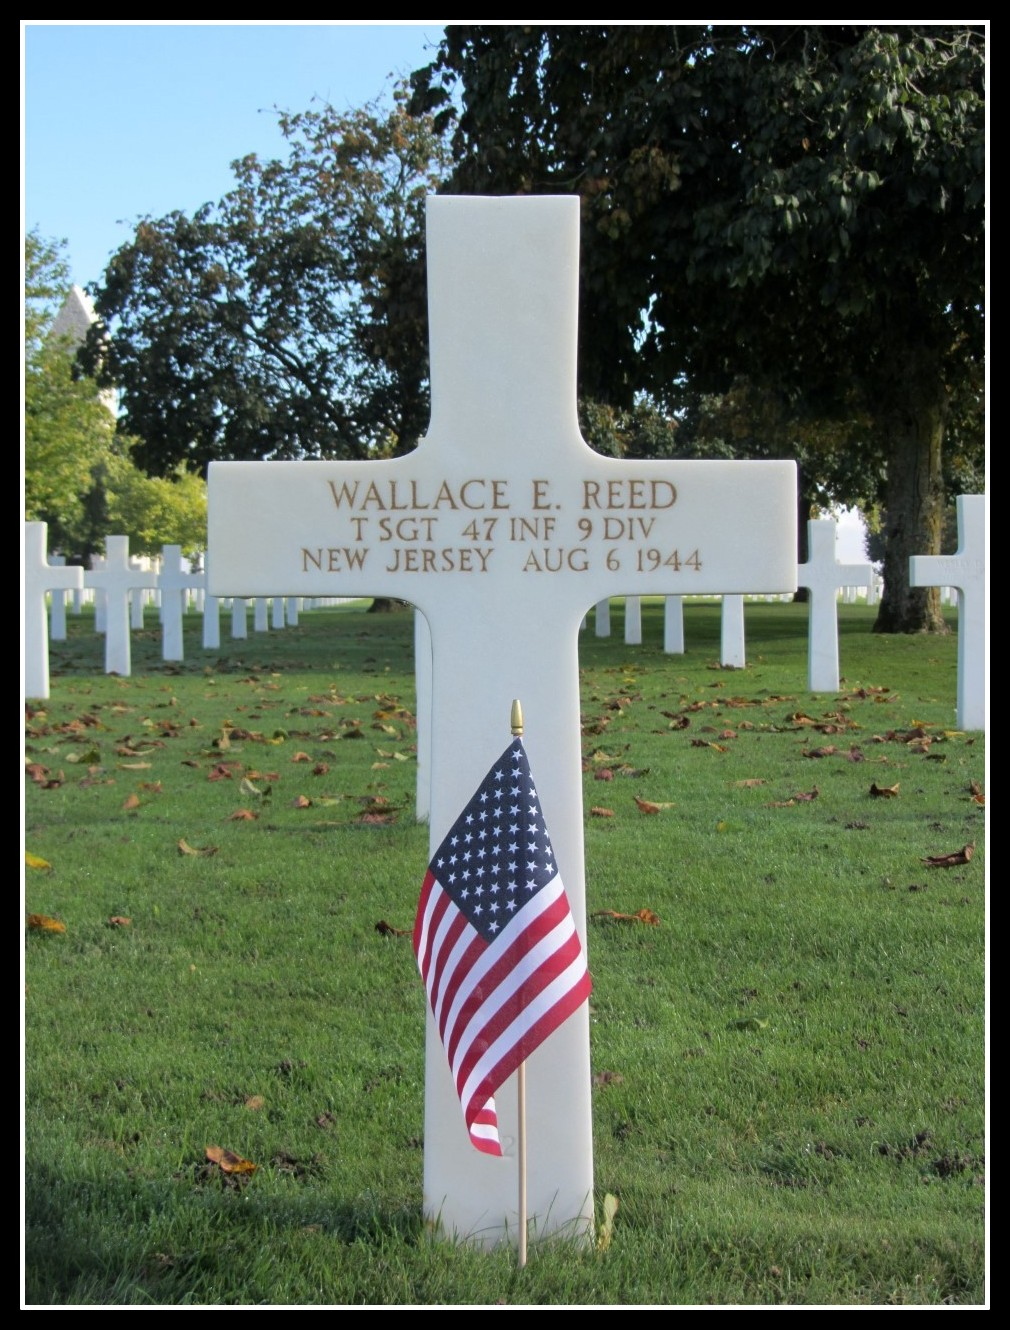 T/Sgt. Wallace E. Reed of Belleville, N.J., was KIA Aug. 6, 1944